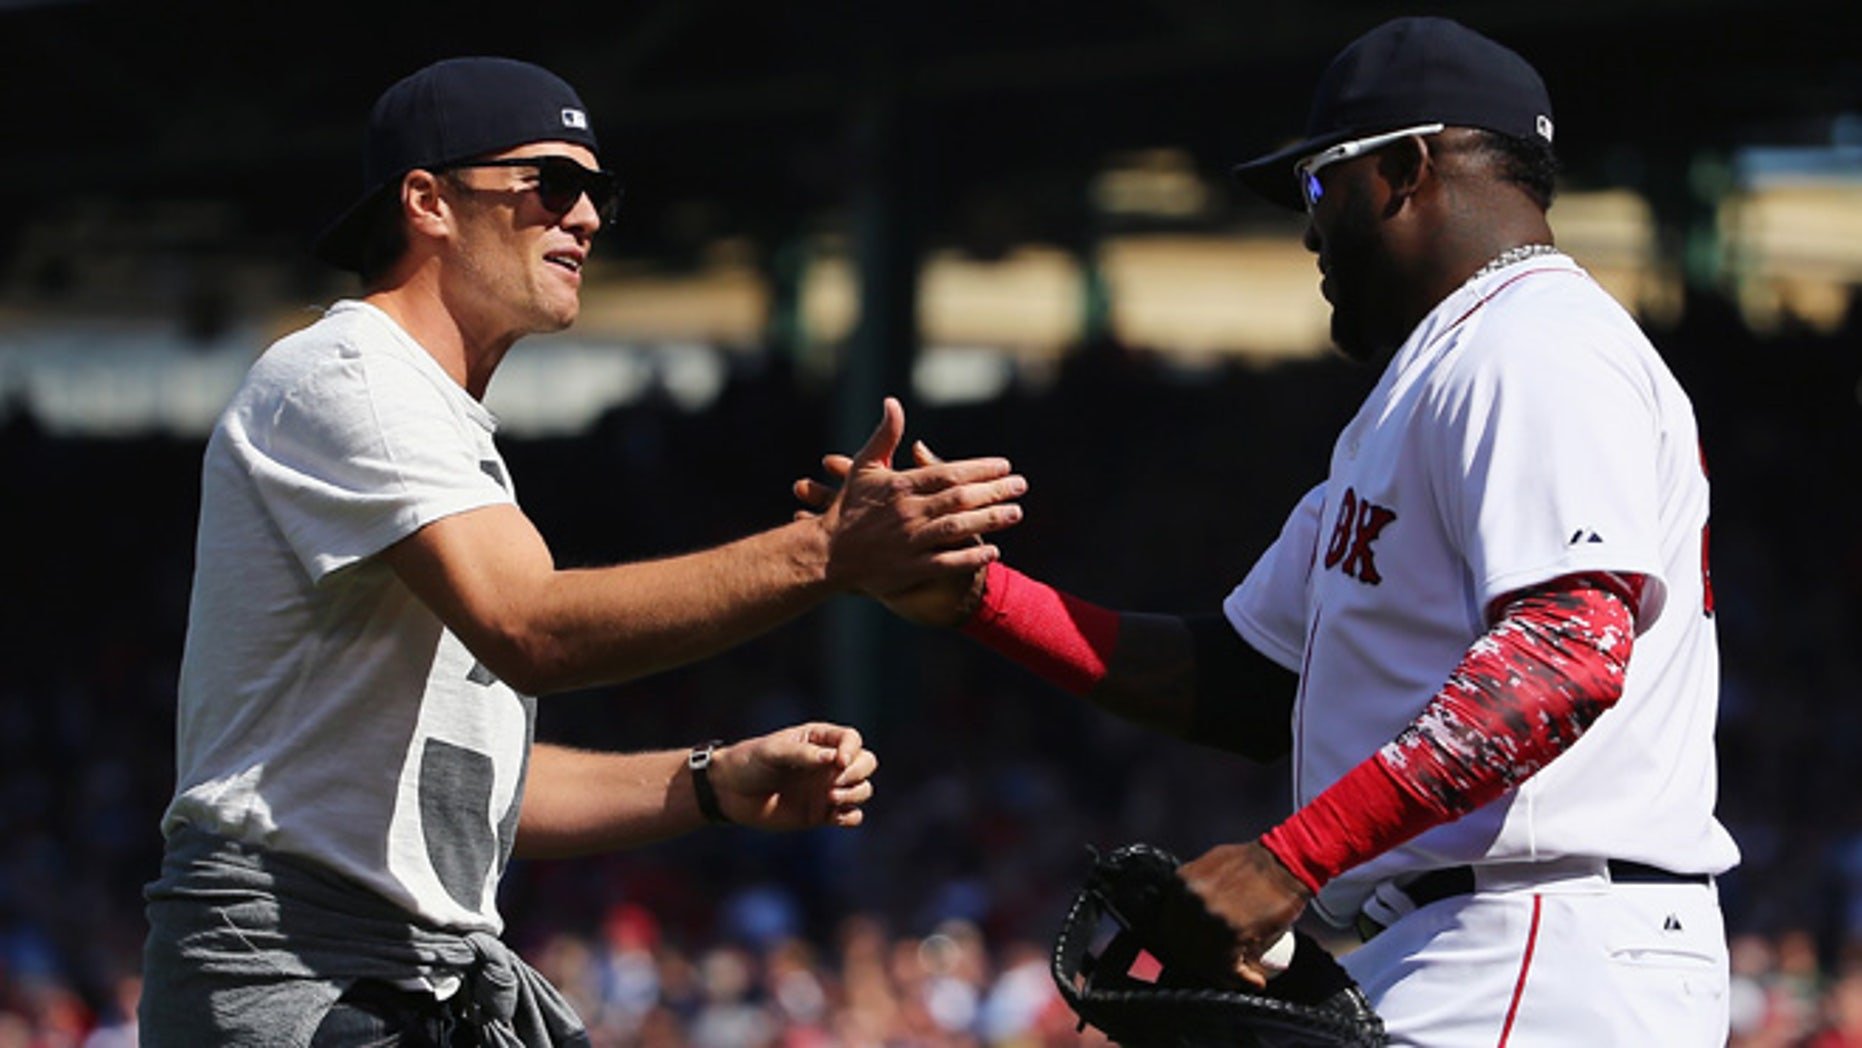 BOSTON, MA - APRIL 13:  New England Patriots quarterback Tom Brady talks with David Ortiz #34 of the Boston Red Sox after throwing out the first pitch before the game against the Washington Nationals at Fenway Park on April 13, 2015 in Boston, Massachusetts.  (Photo by Maddie Meyer/Getty Images)